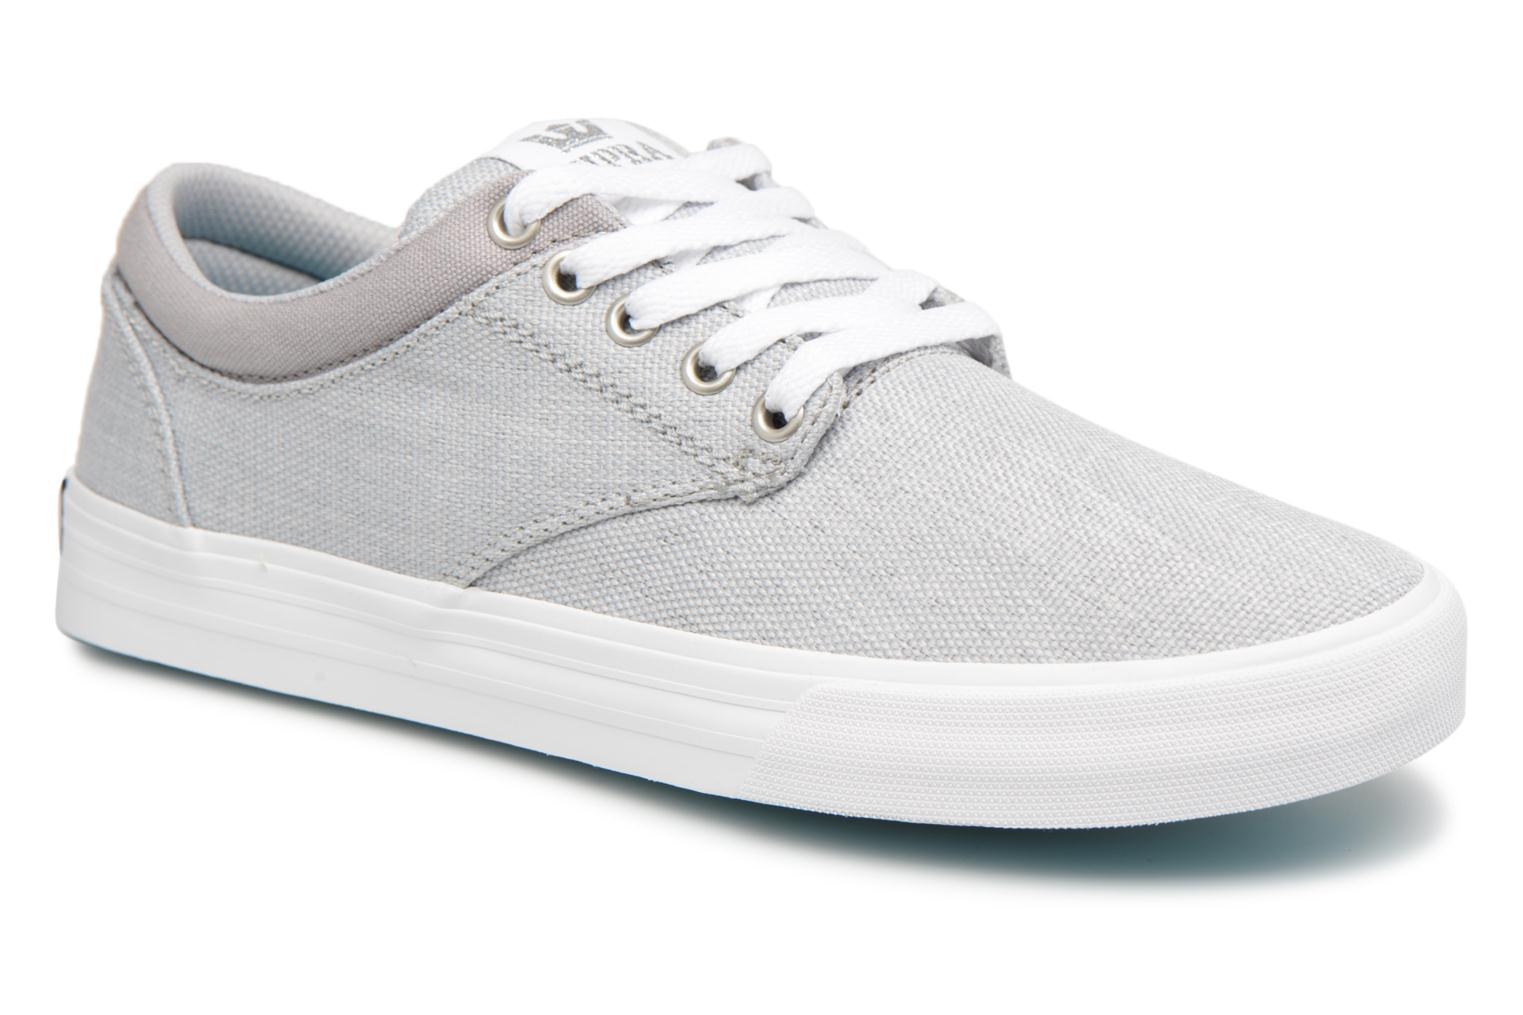 Marques Chaussure homme Supra homme CHINO BLUE - WHITE-M